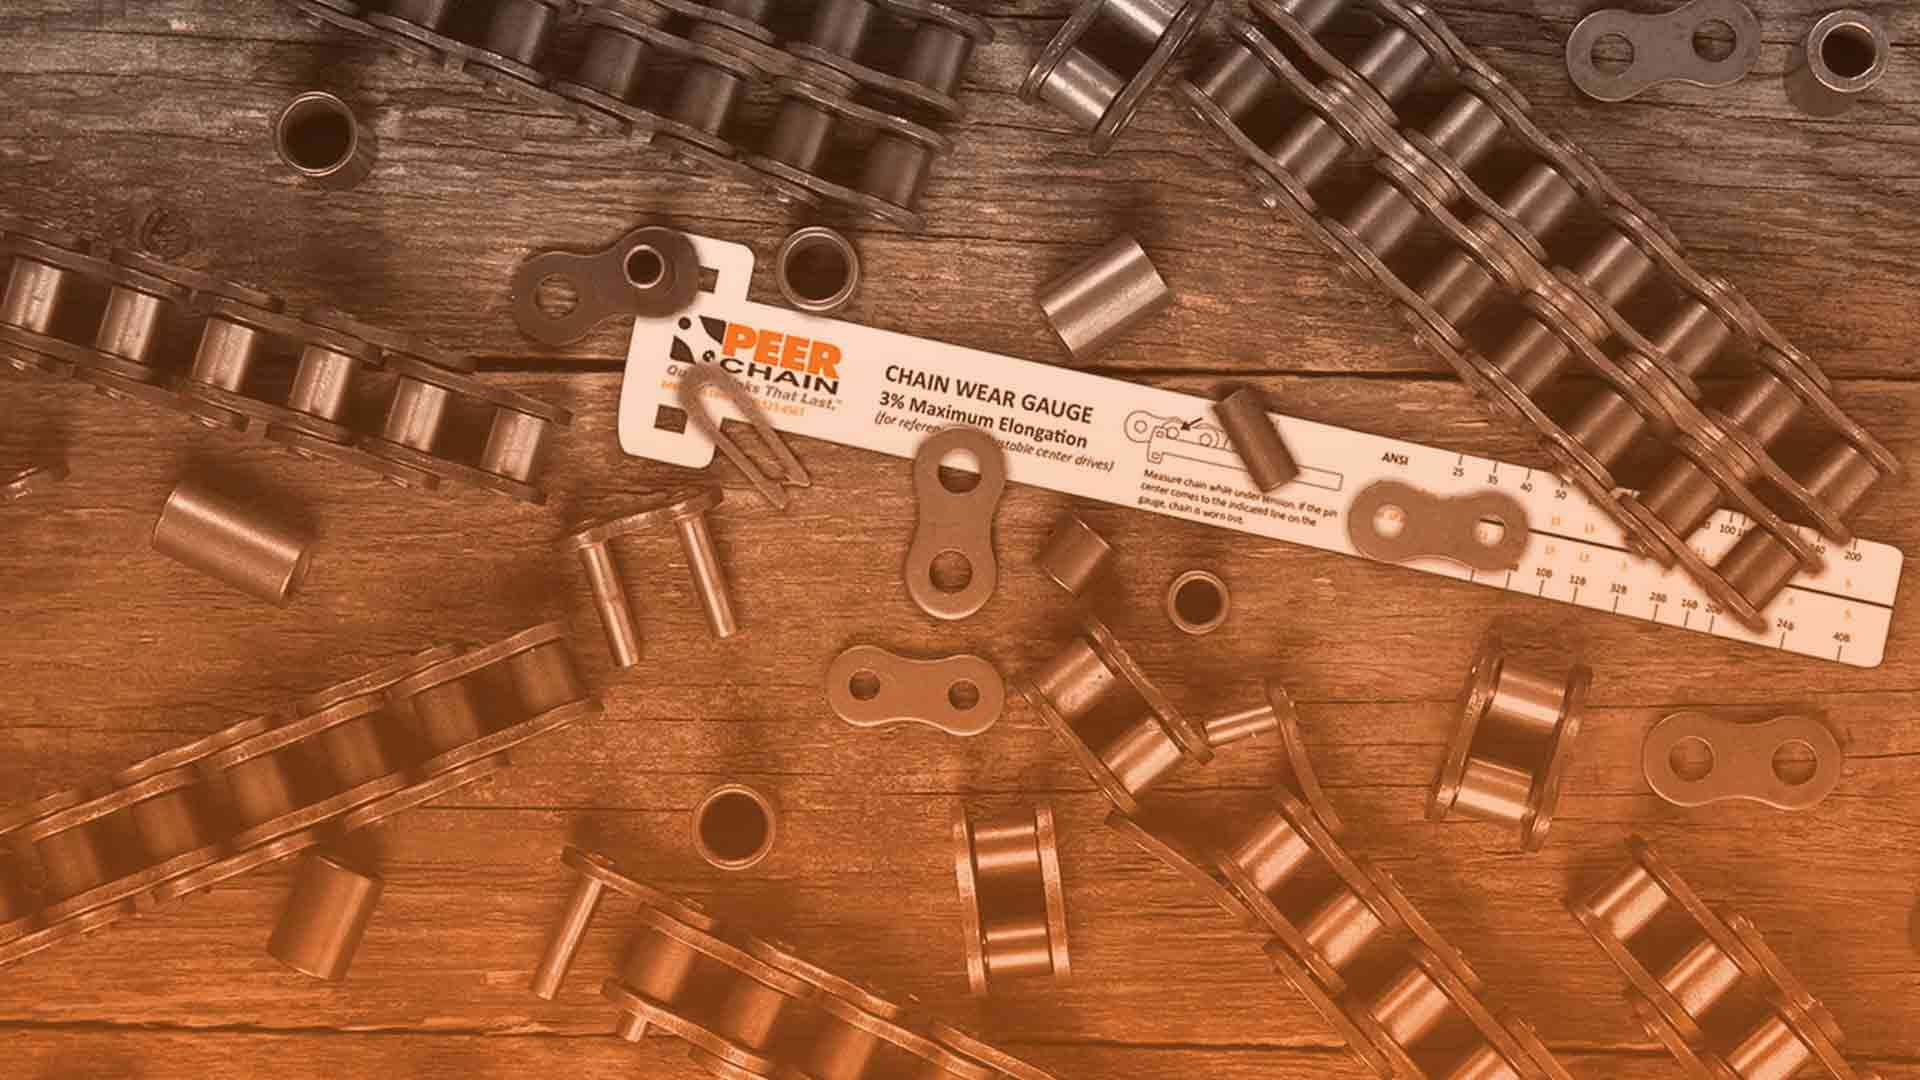 roller chain wear gauge